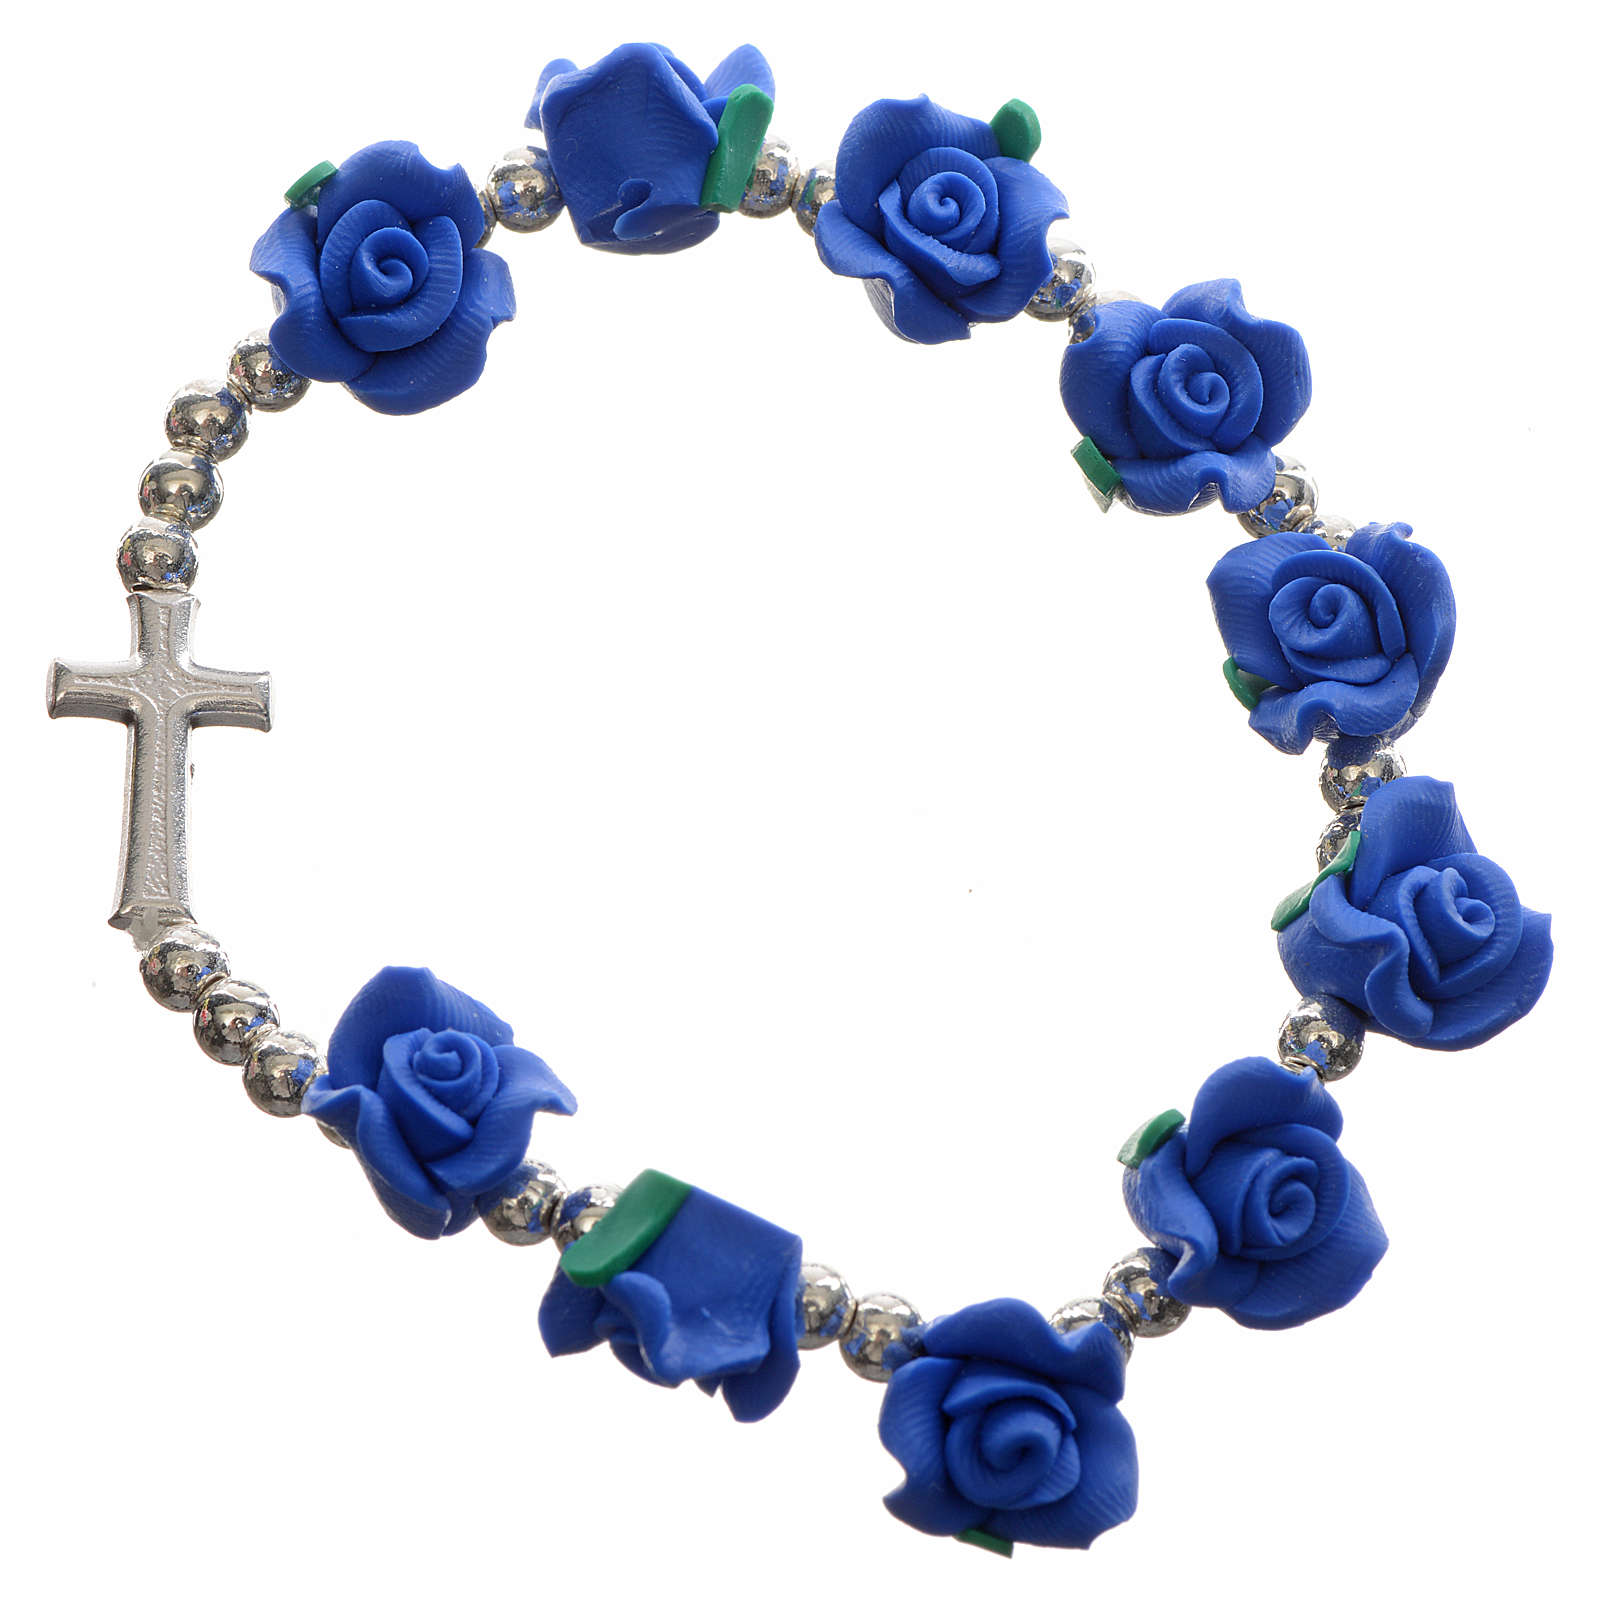 Elastic bracelet with roses 4